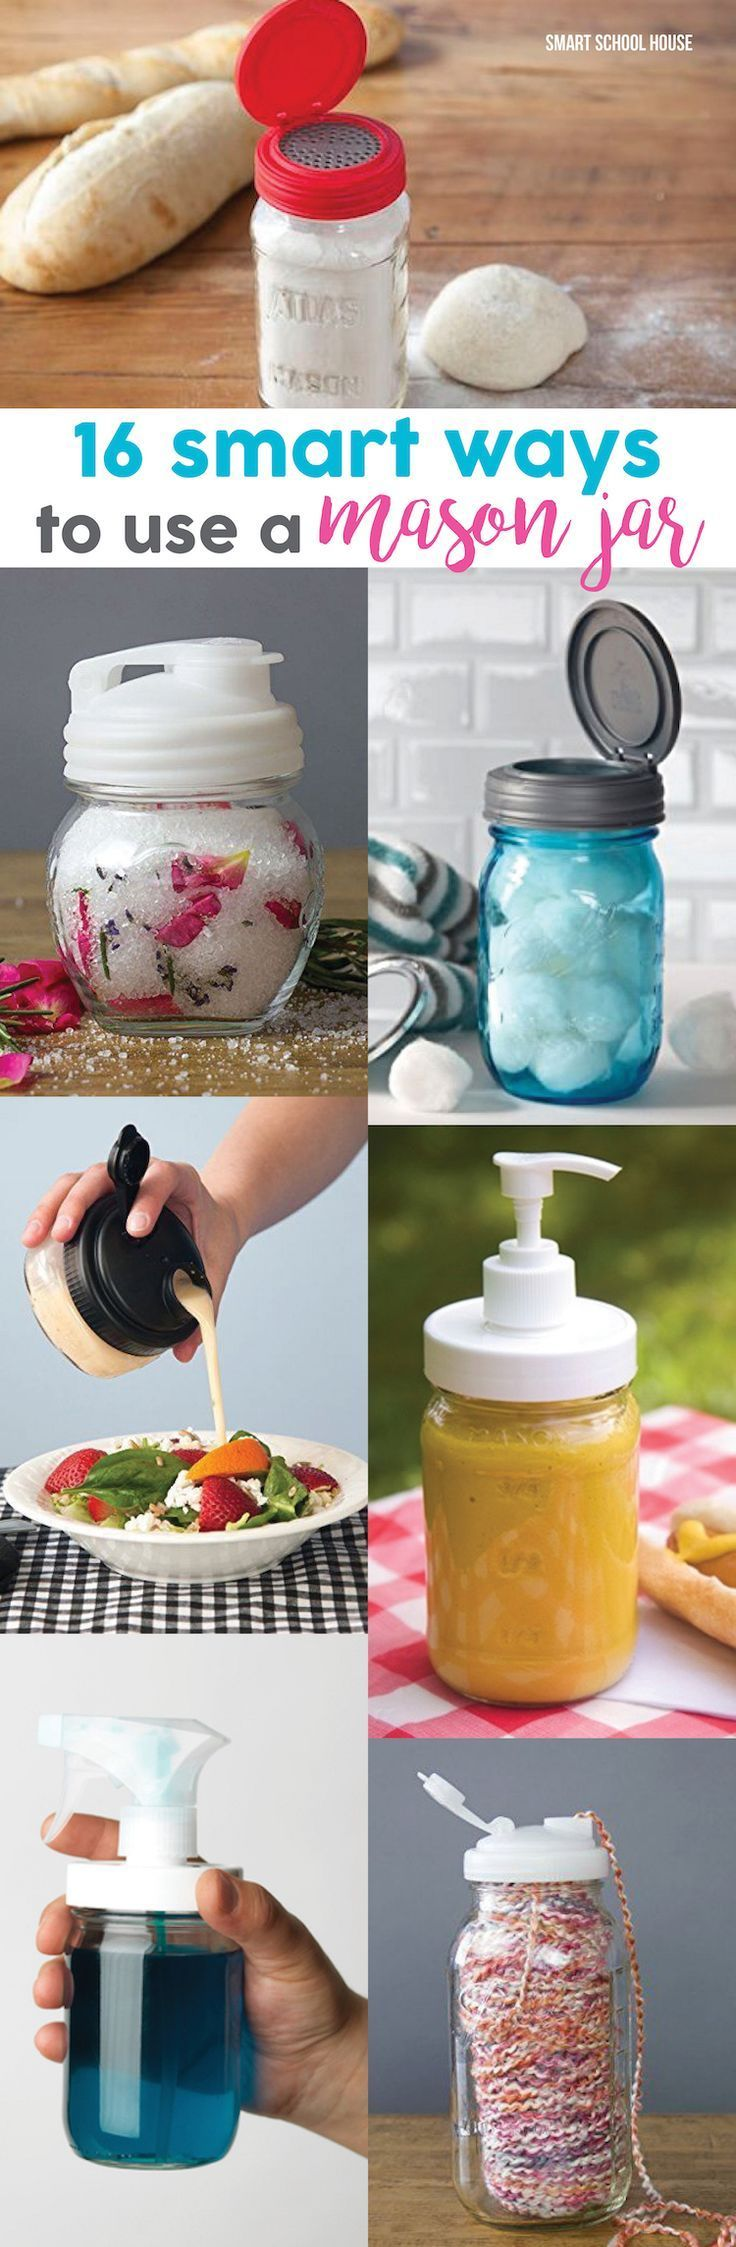 Ways To Use Mason Jars Best Of Pinterest Plastic Mason Jars